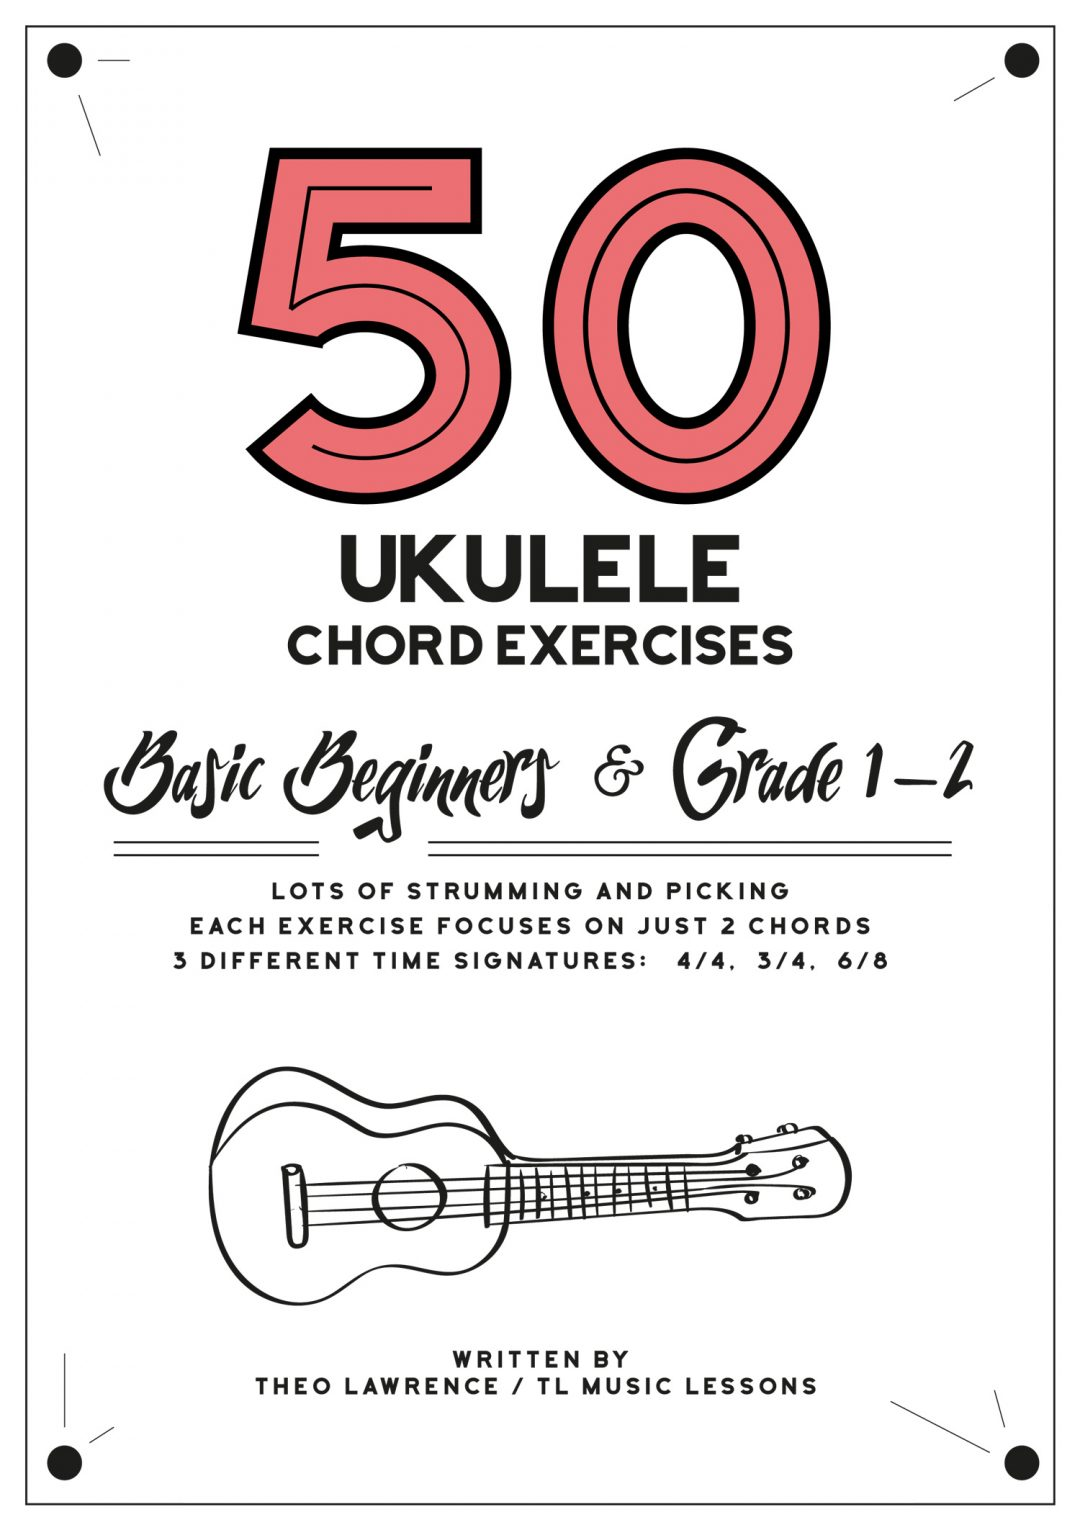 (Premium) – 50 Ukulele Chord Exercises ebook – Beginners & Grade 1-2